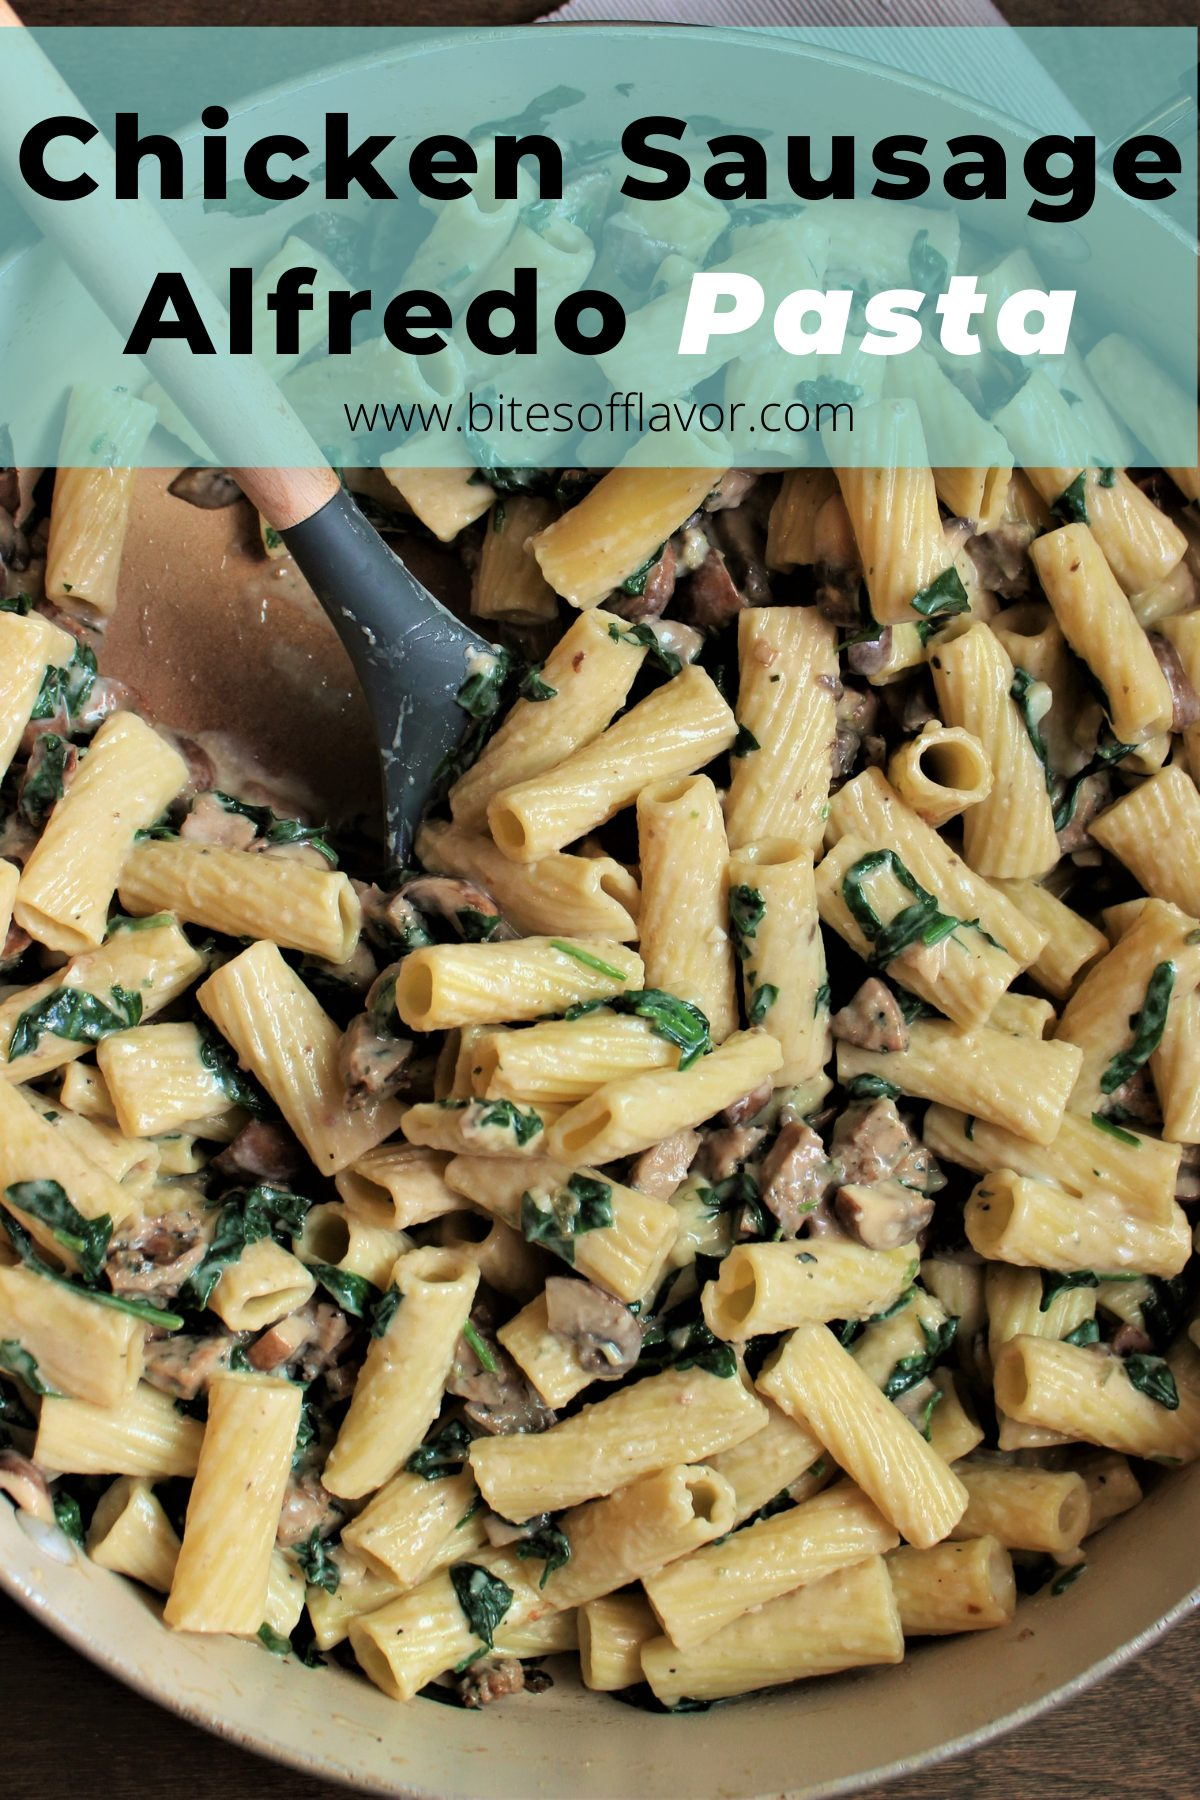 Chicken Sausage Alfredo Pasta is delicious chicken sausage with baby spinach & mushrooms in a decadent & light Alfredo sauce. Ready in under 1 hour and a kid friendly recipe!